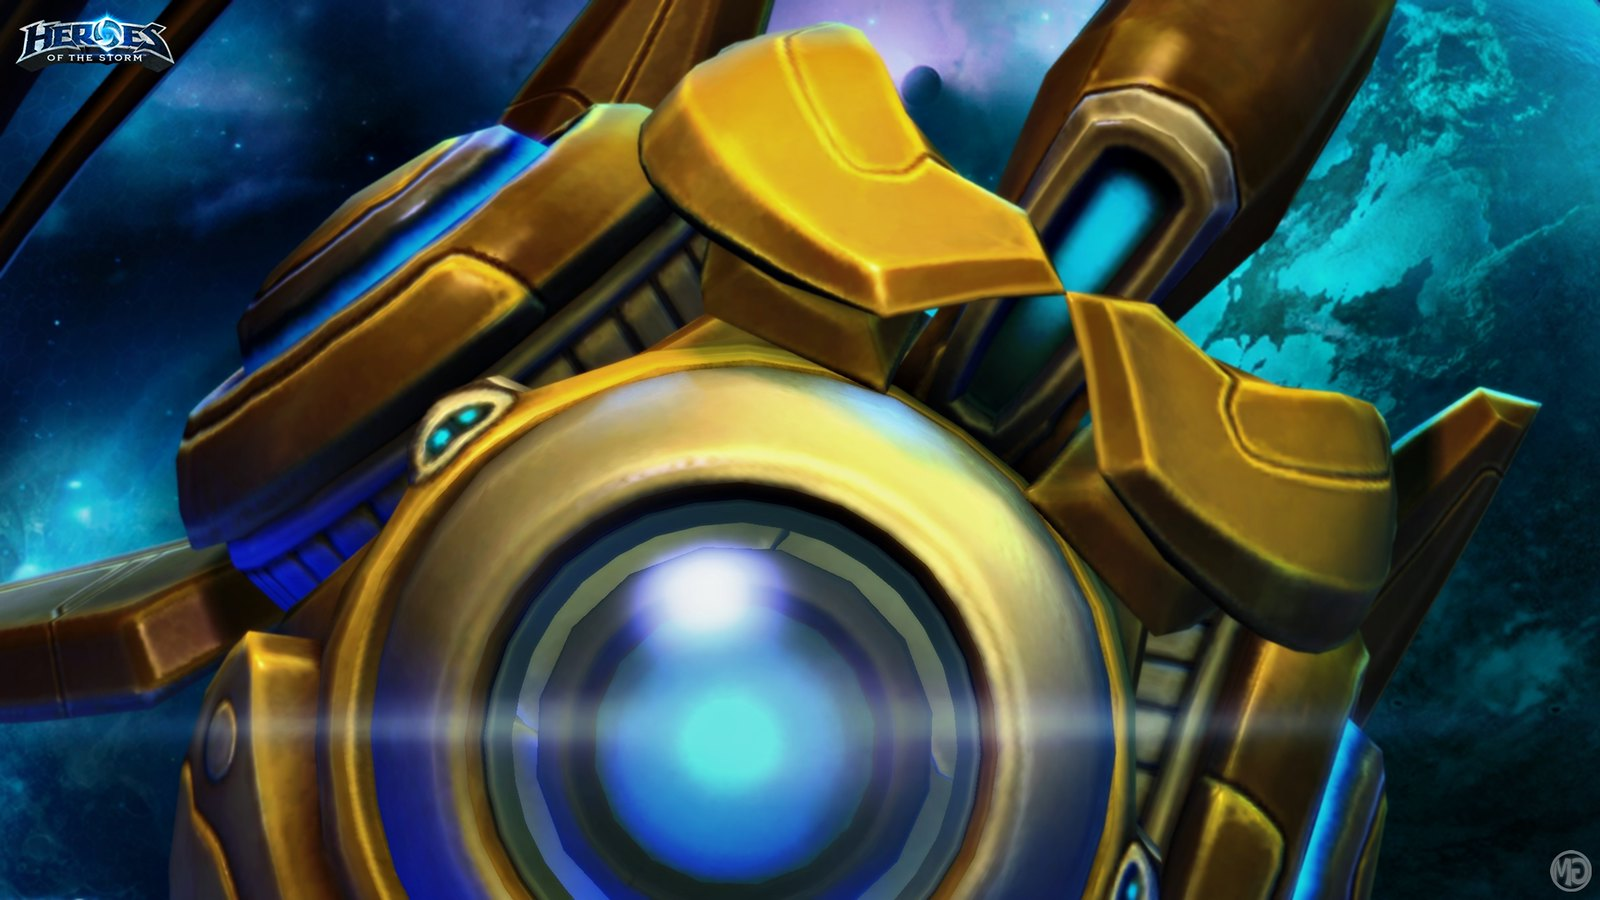 Heroes Of The Storm Probius Wallpaper 1080p Mefisto Gamer Flickr